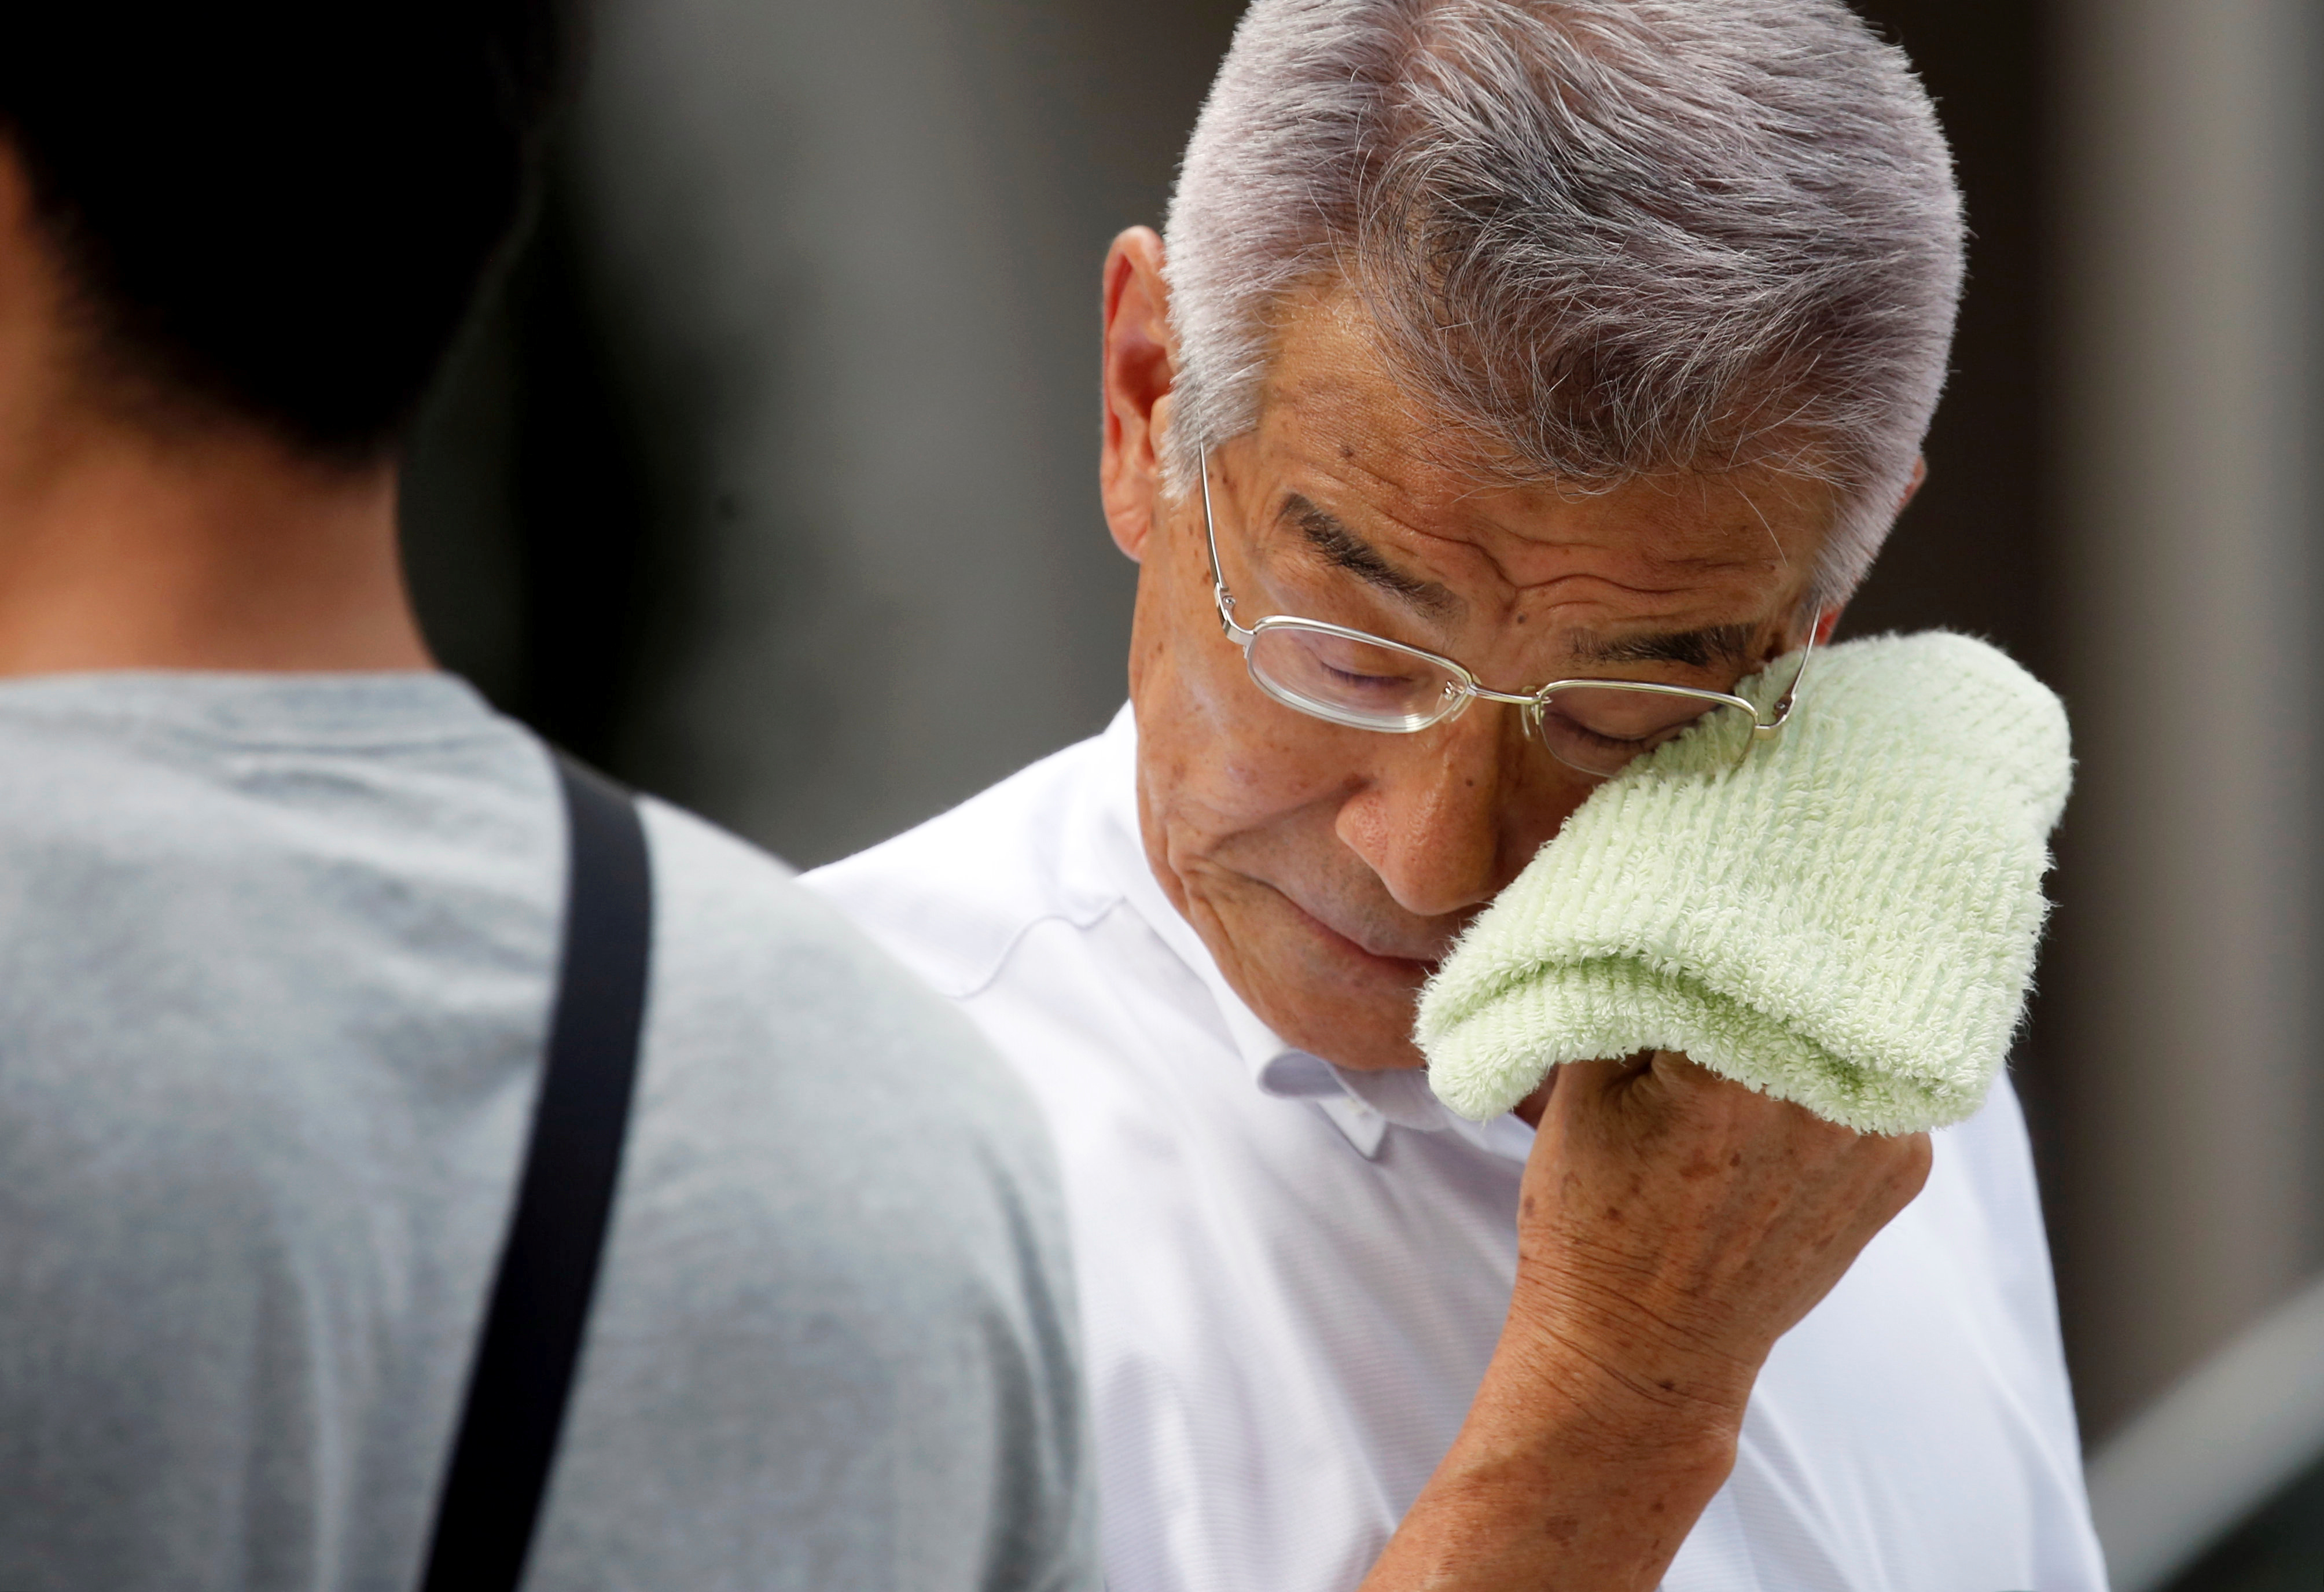 A businessman wipes his face while walking on a street in on Monday.